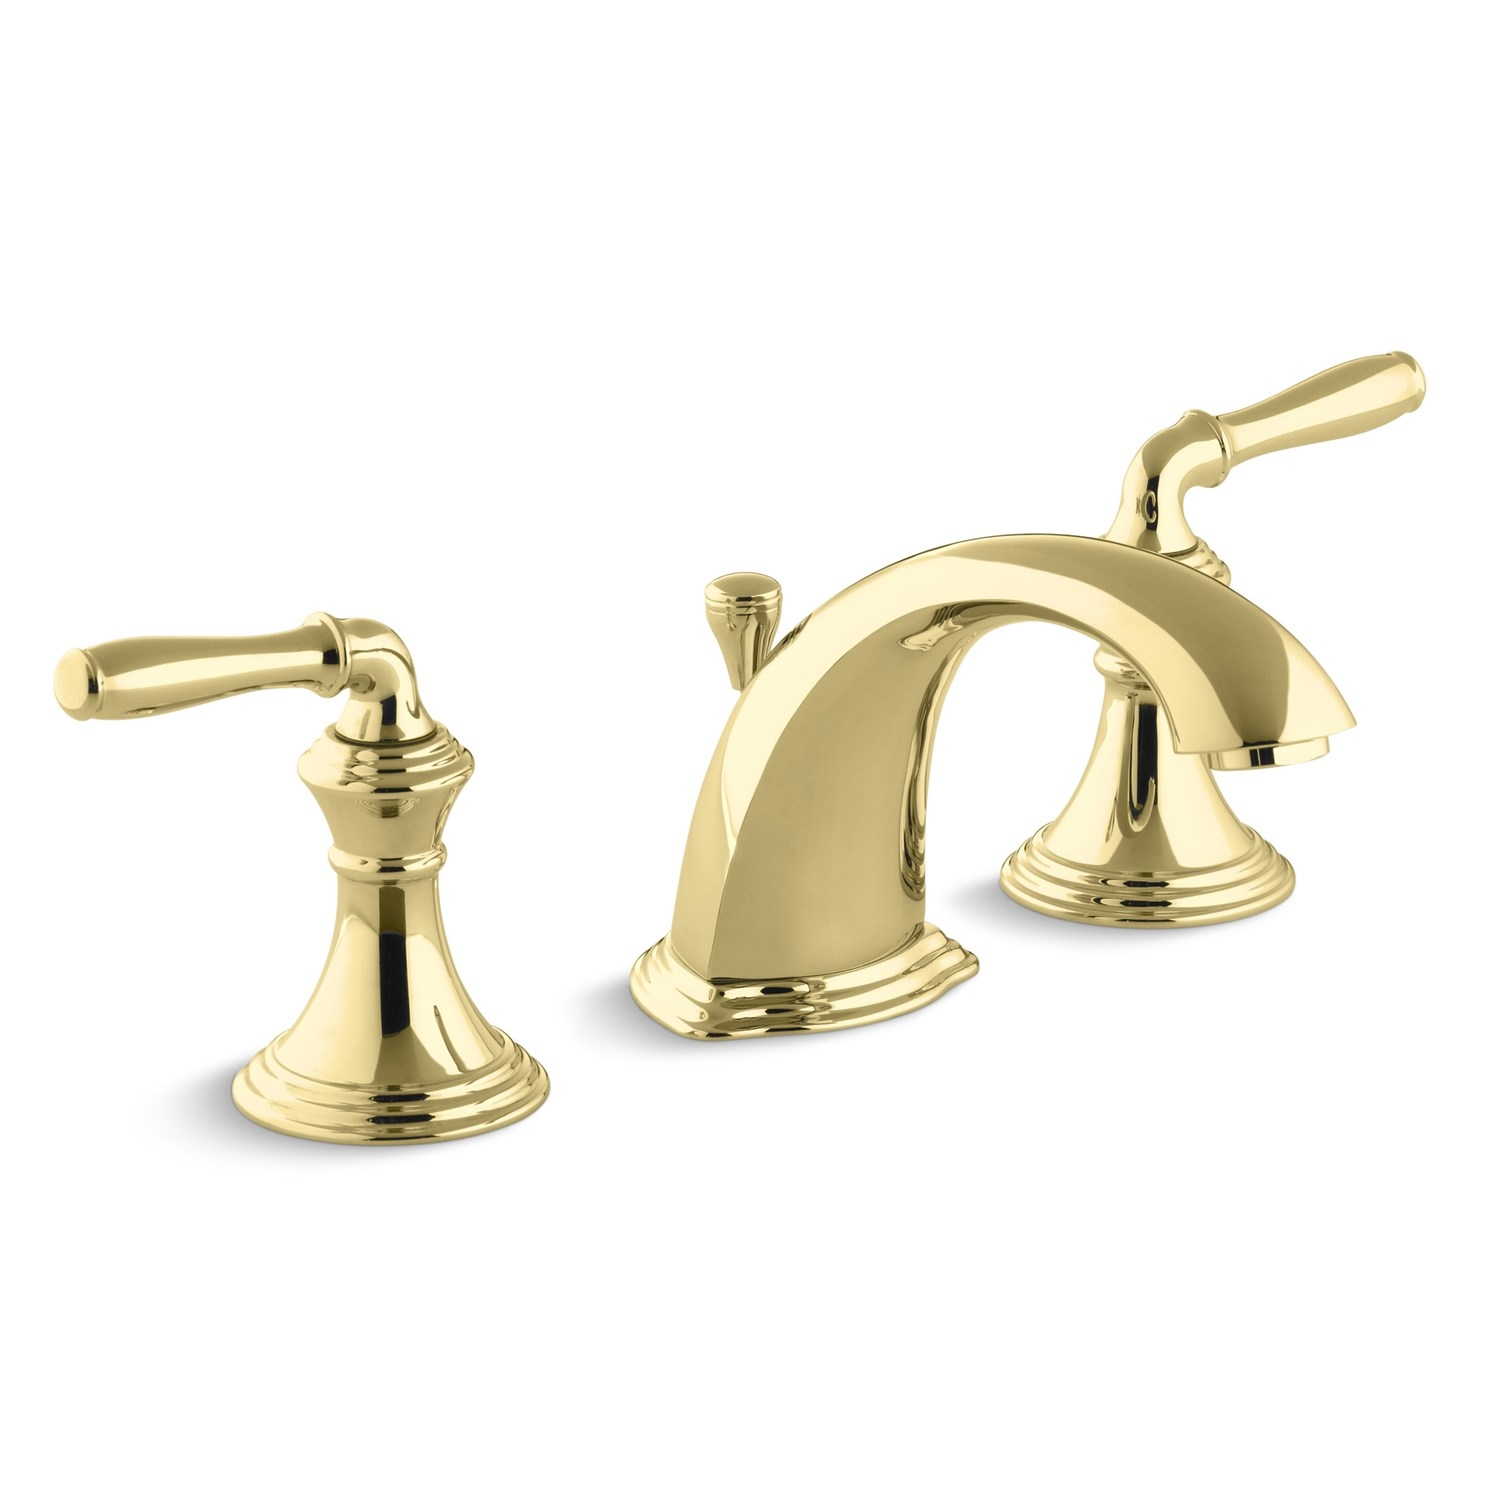 Ideas, brass tones bathroom faucets homeclick pertaining to proportions 1500 x 1500  .